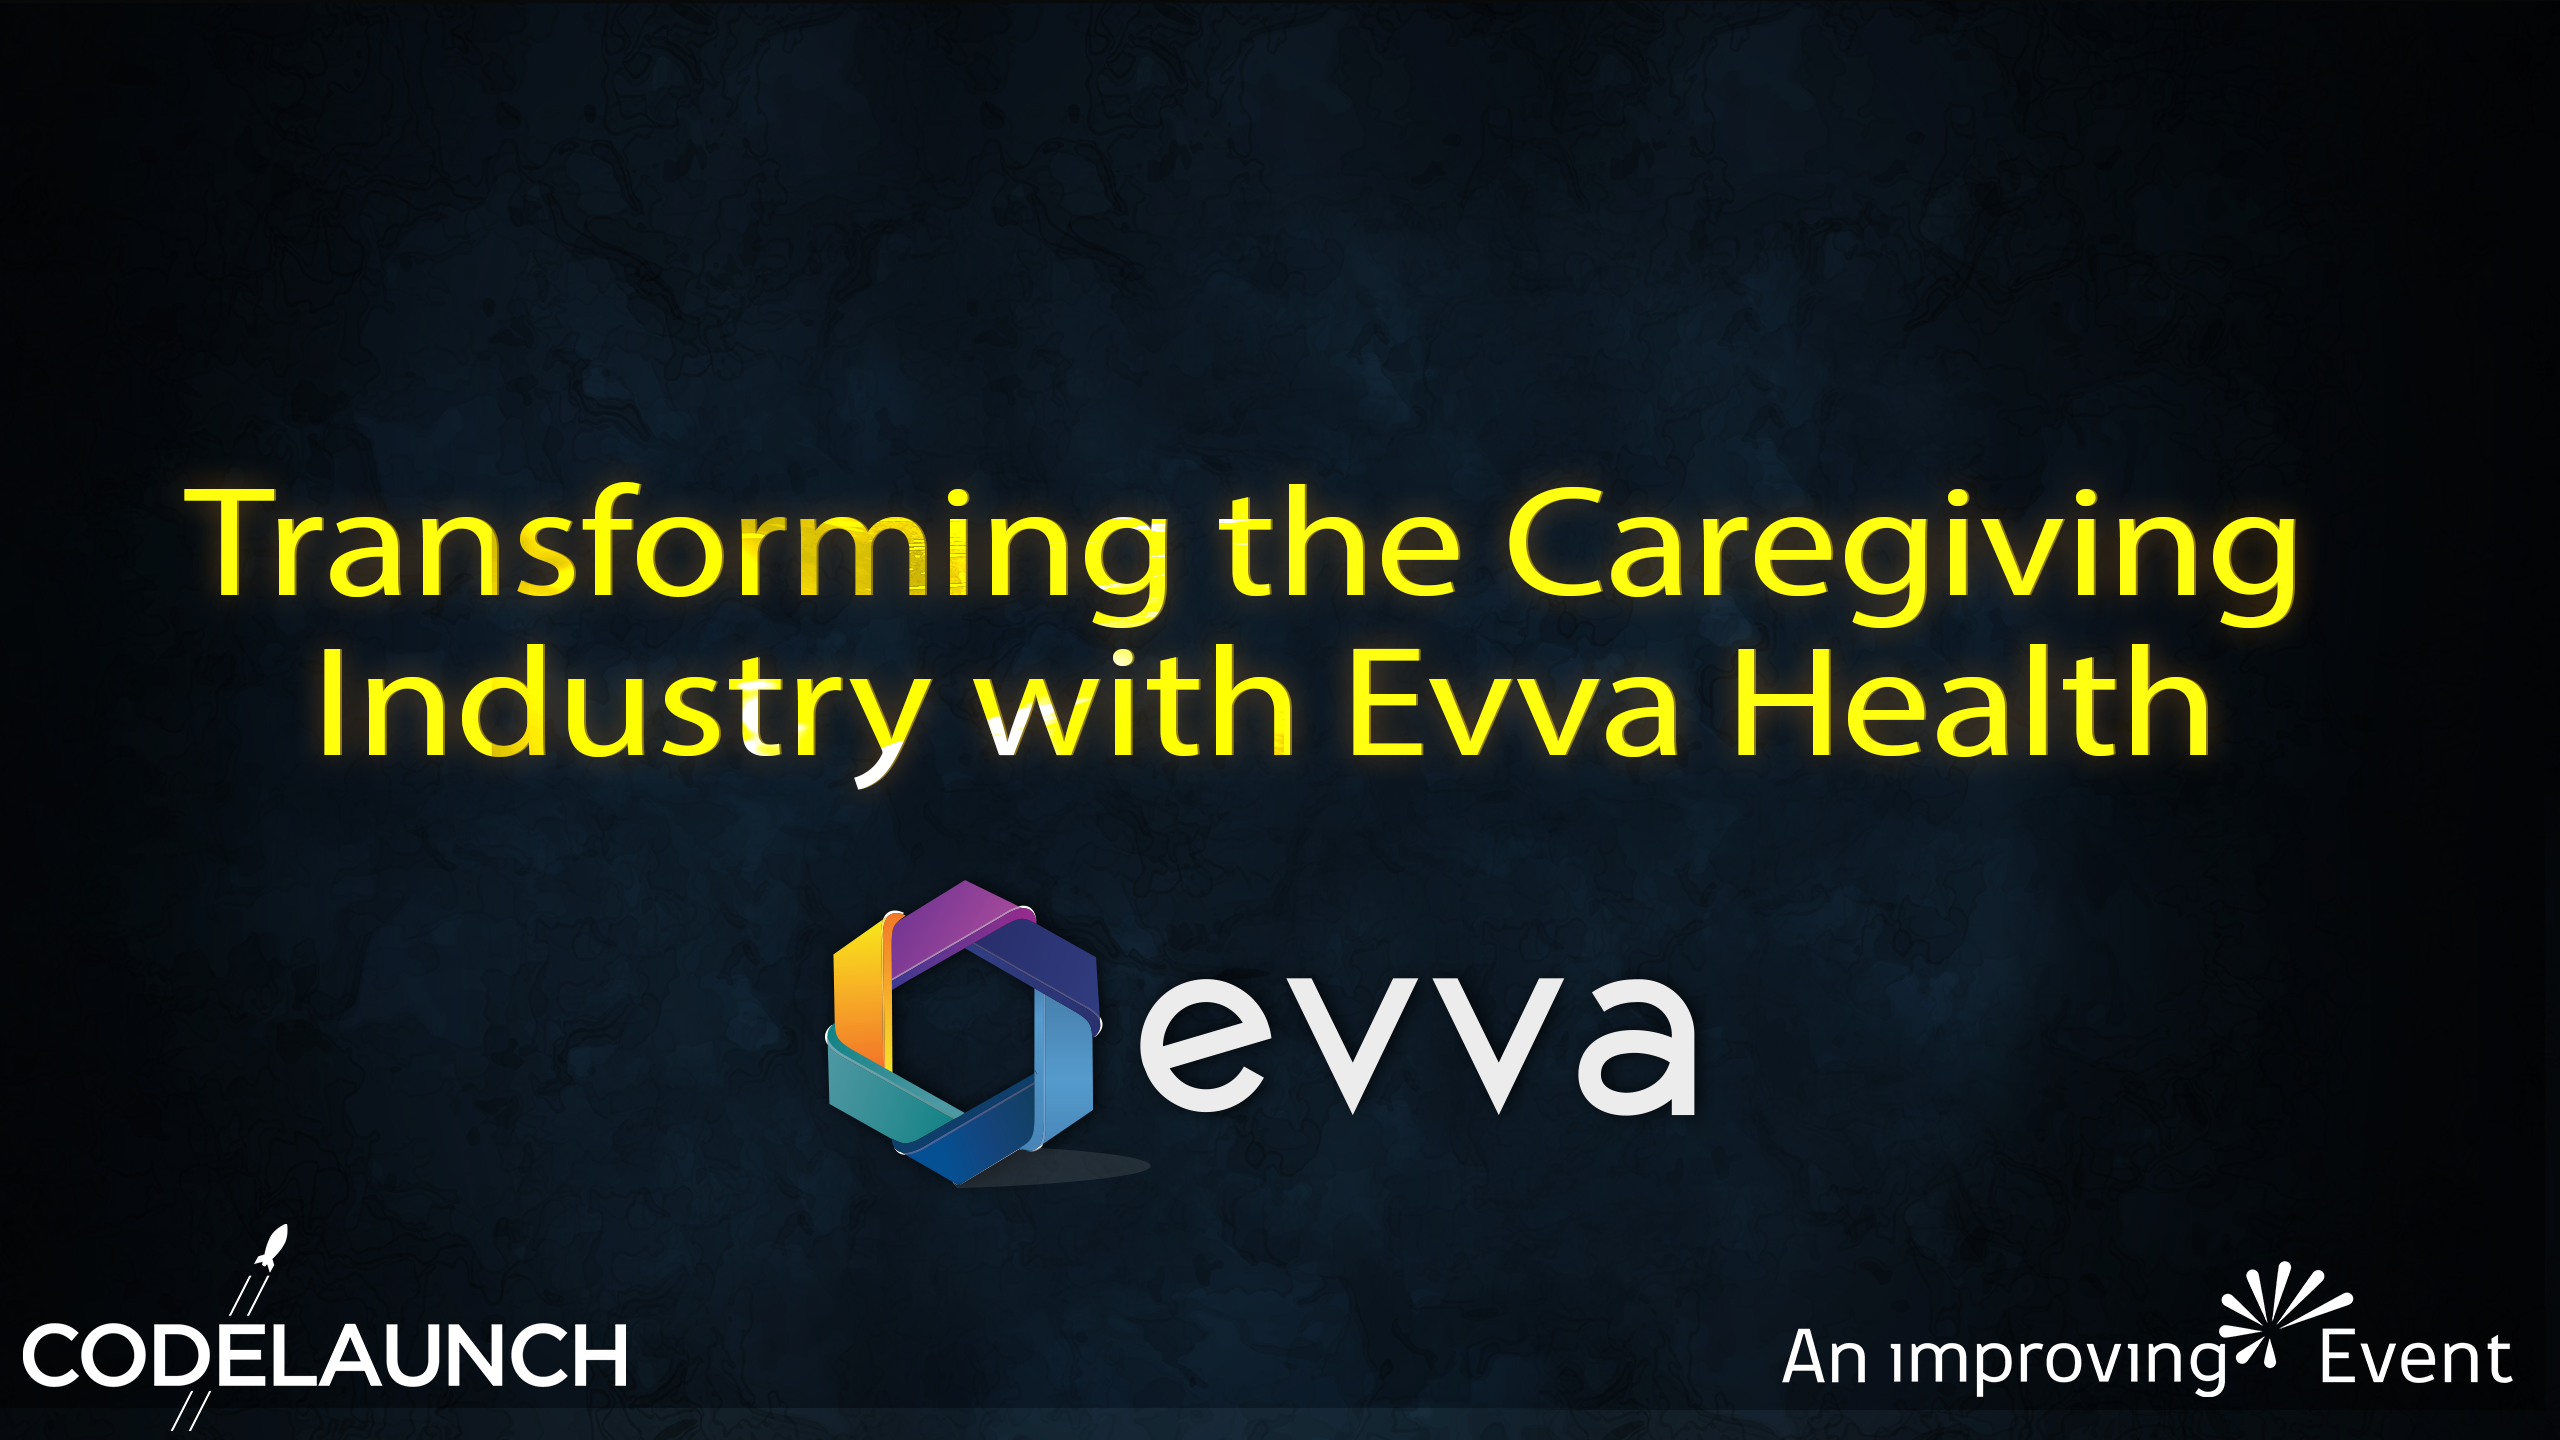 Transforming the Caregiving Industry with Evva Health